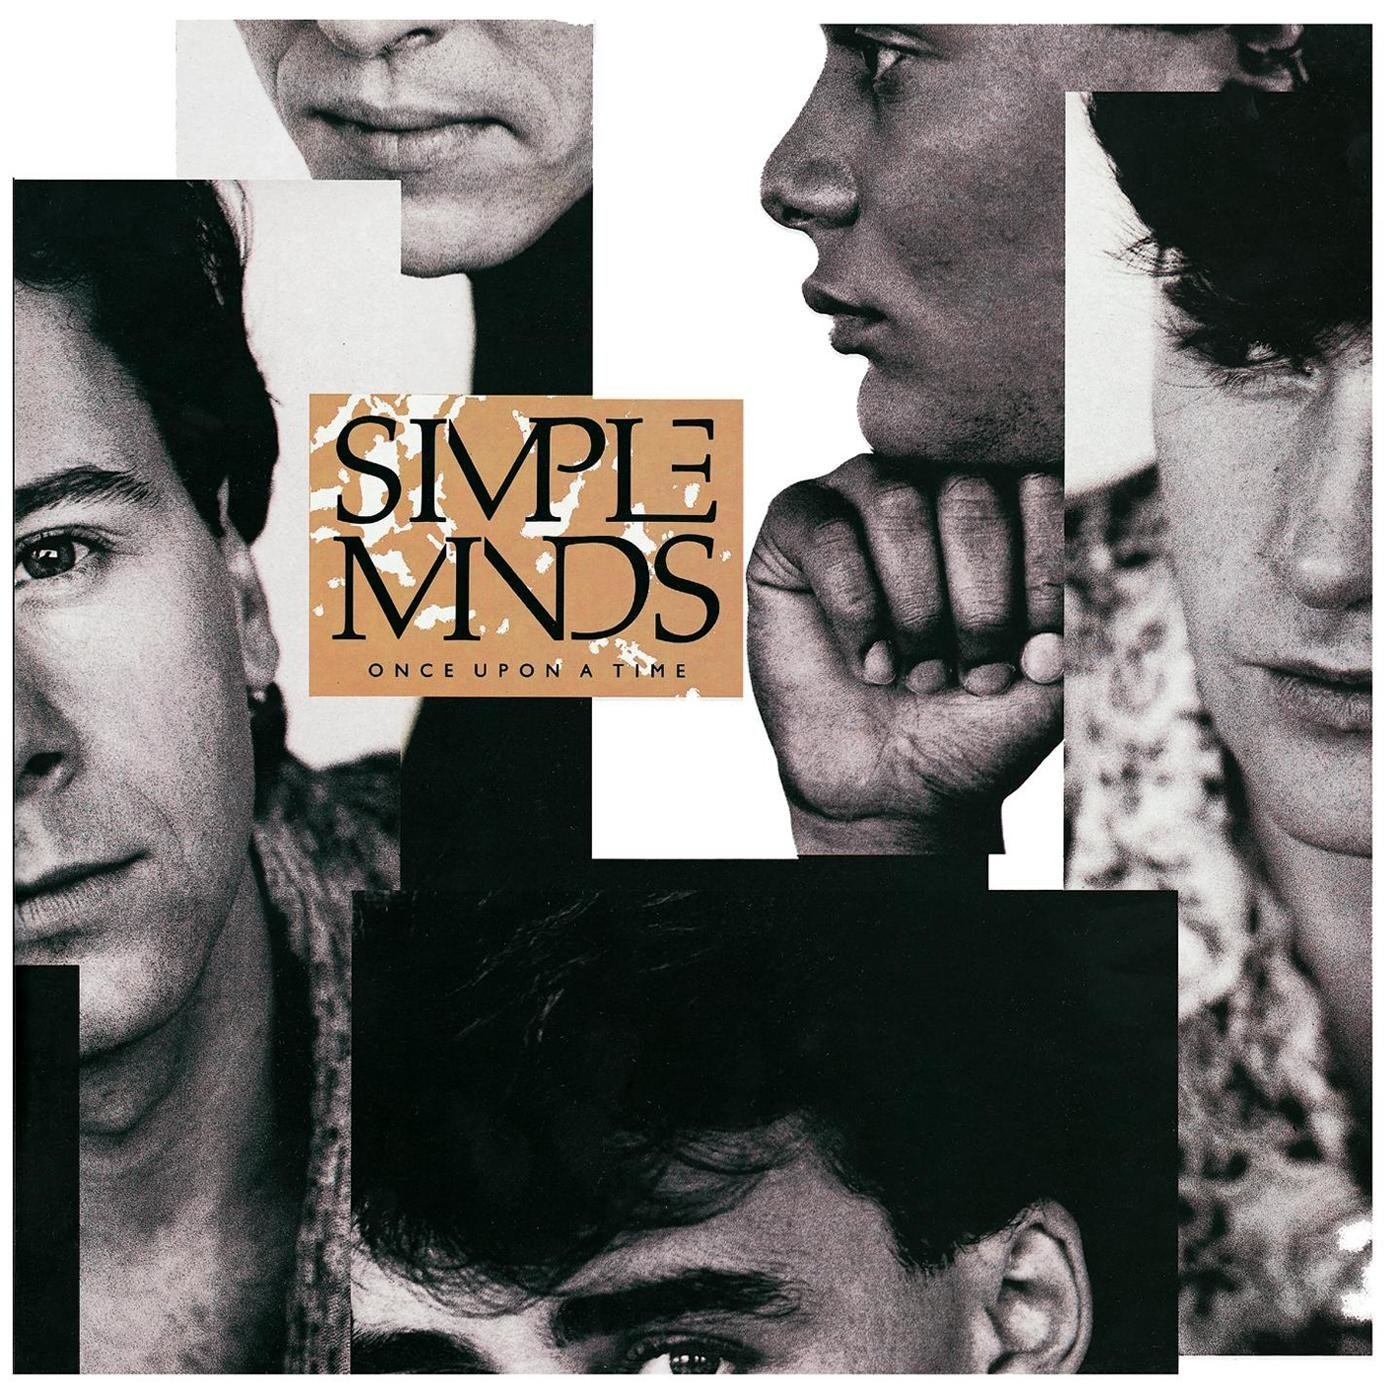 Buy Online Simple Minds - Once Upon A Time (Super Deluxe Box Set)